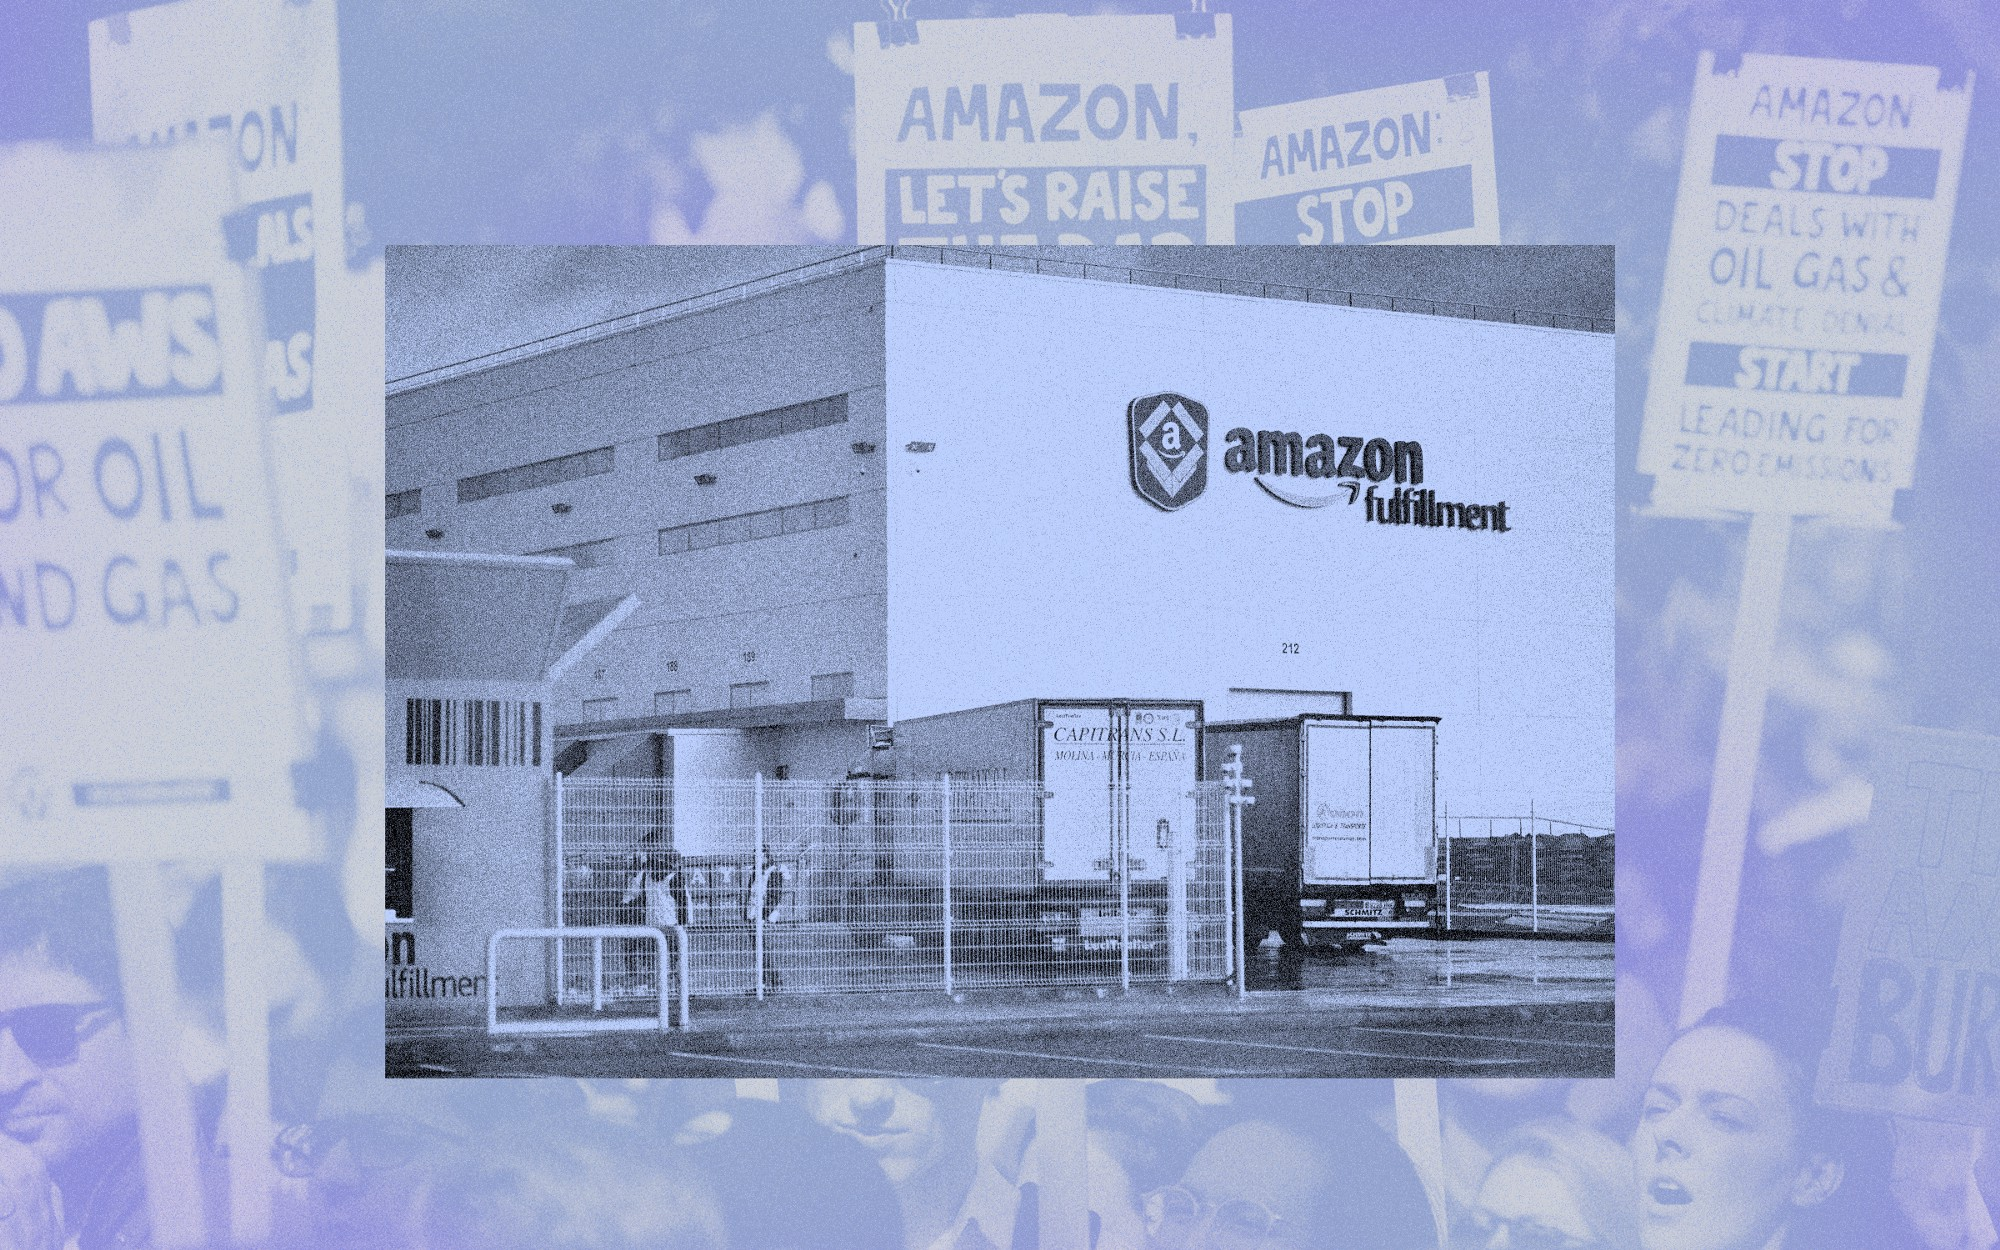 A treated photo collage of an Amazon warehouse facility juxtaposed on top of an Amazon workers protest.